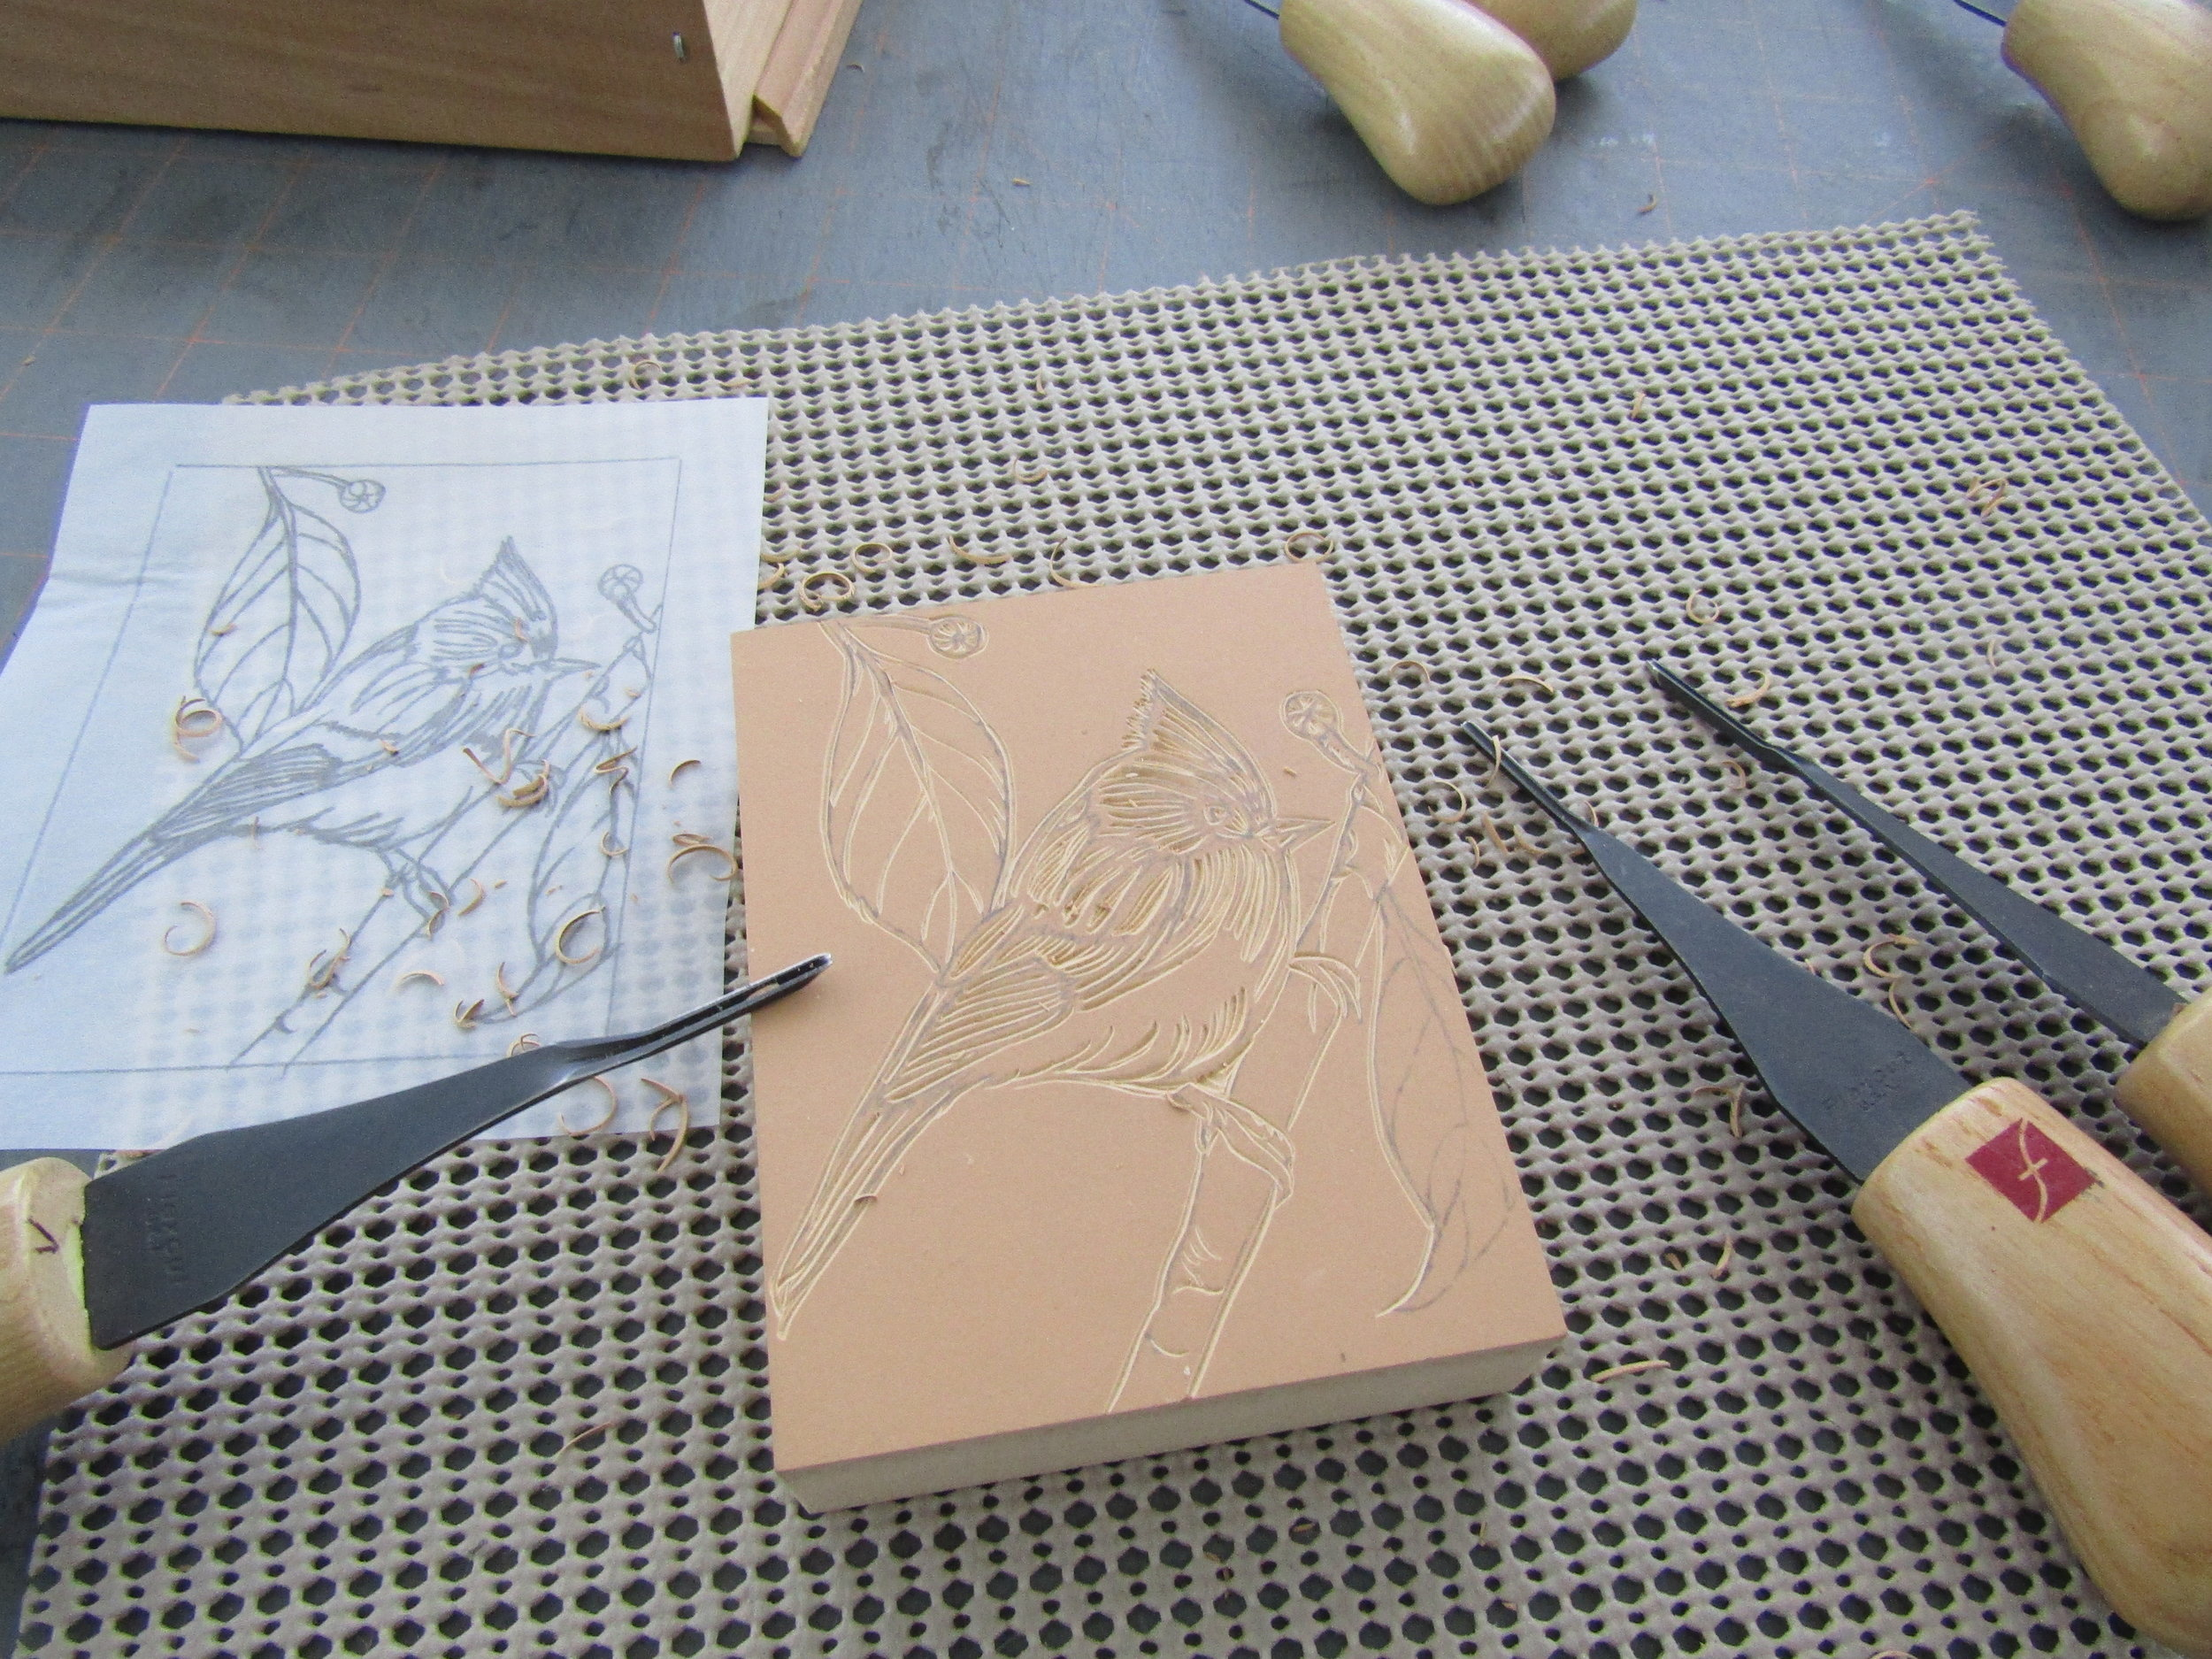 After completing the sketches, I transferred the images to the blocks, and then carved them. Once the carving was complered, I proofed each image prior to printing on my Vandercook SP 15.